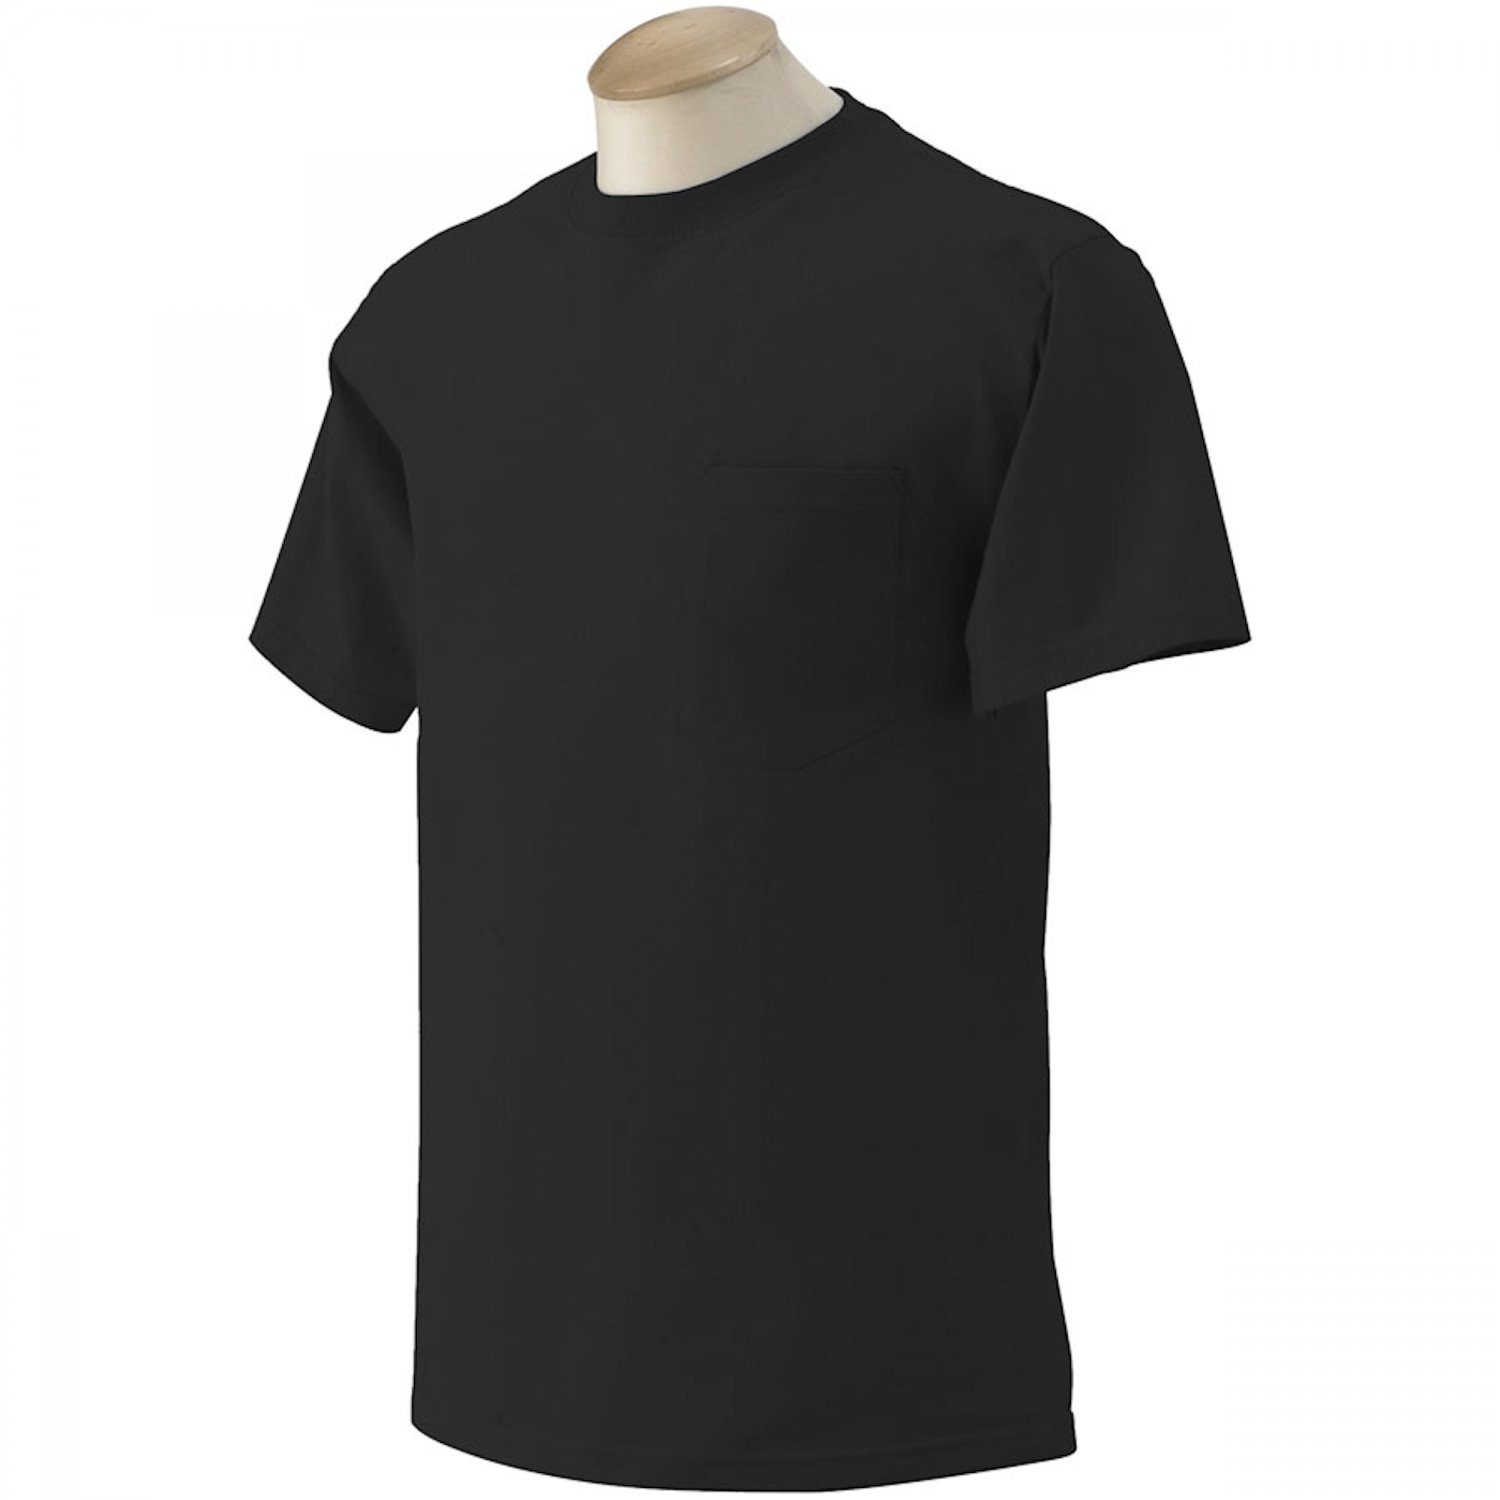 10 gildan big tall mens pocket t shirts wholesale to for Cheap t shirt printing next day delivery